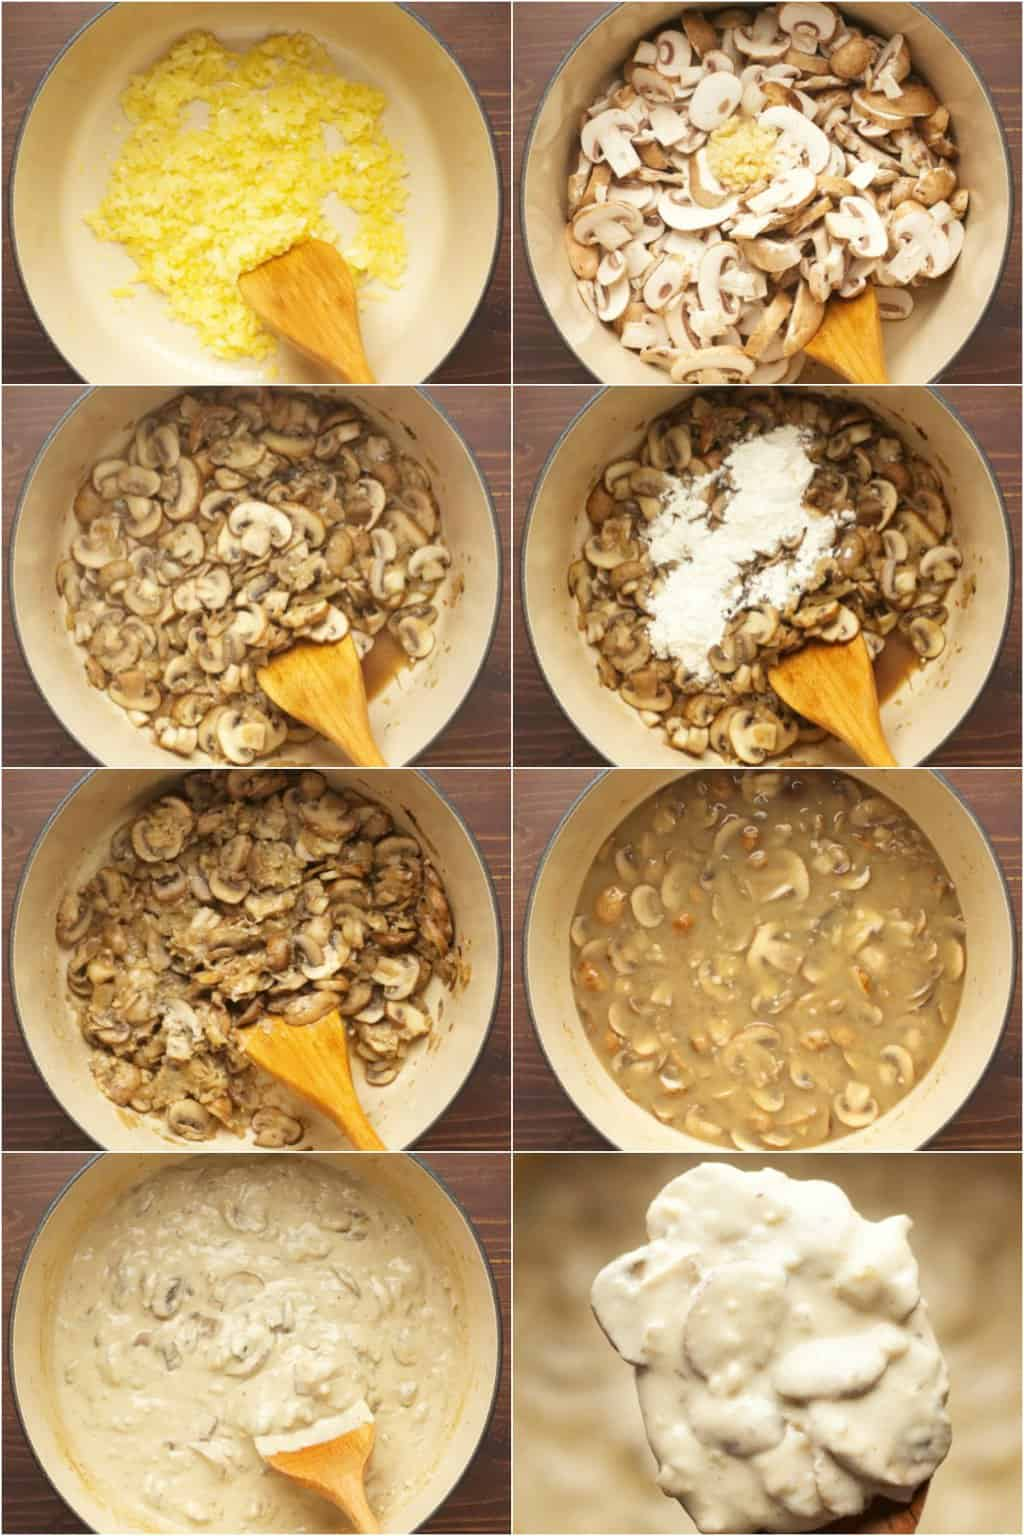 Step by step process photo collage of making a vegan mushroom stroganoff sauce.